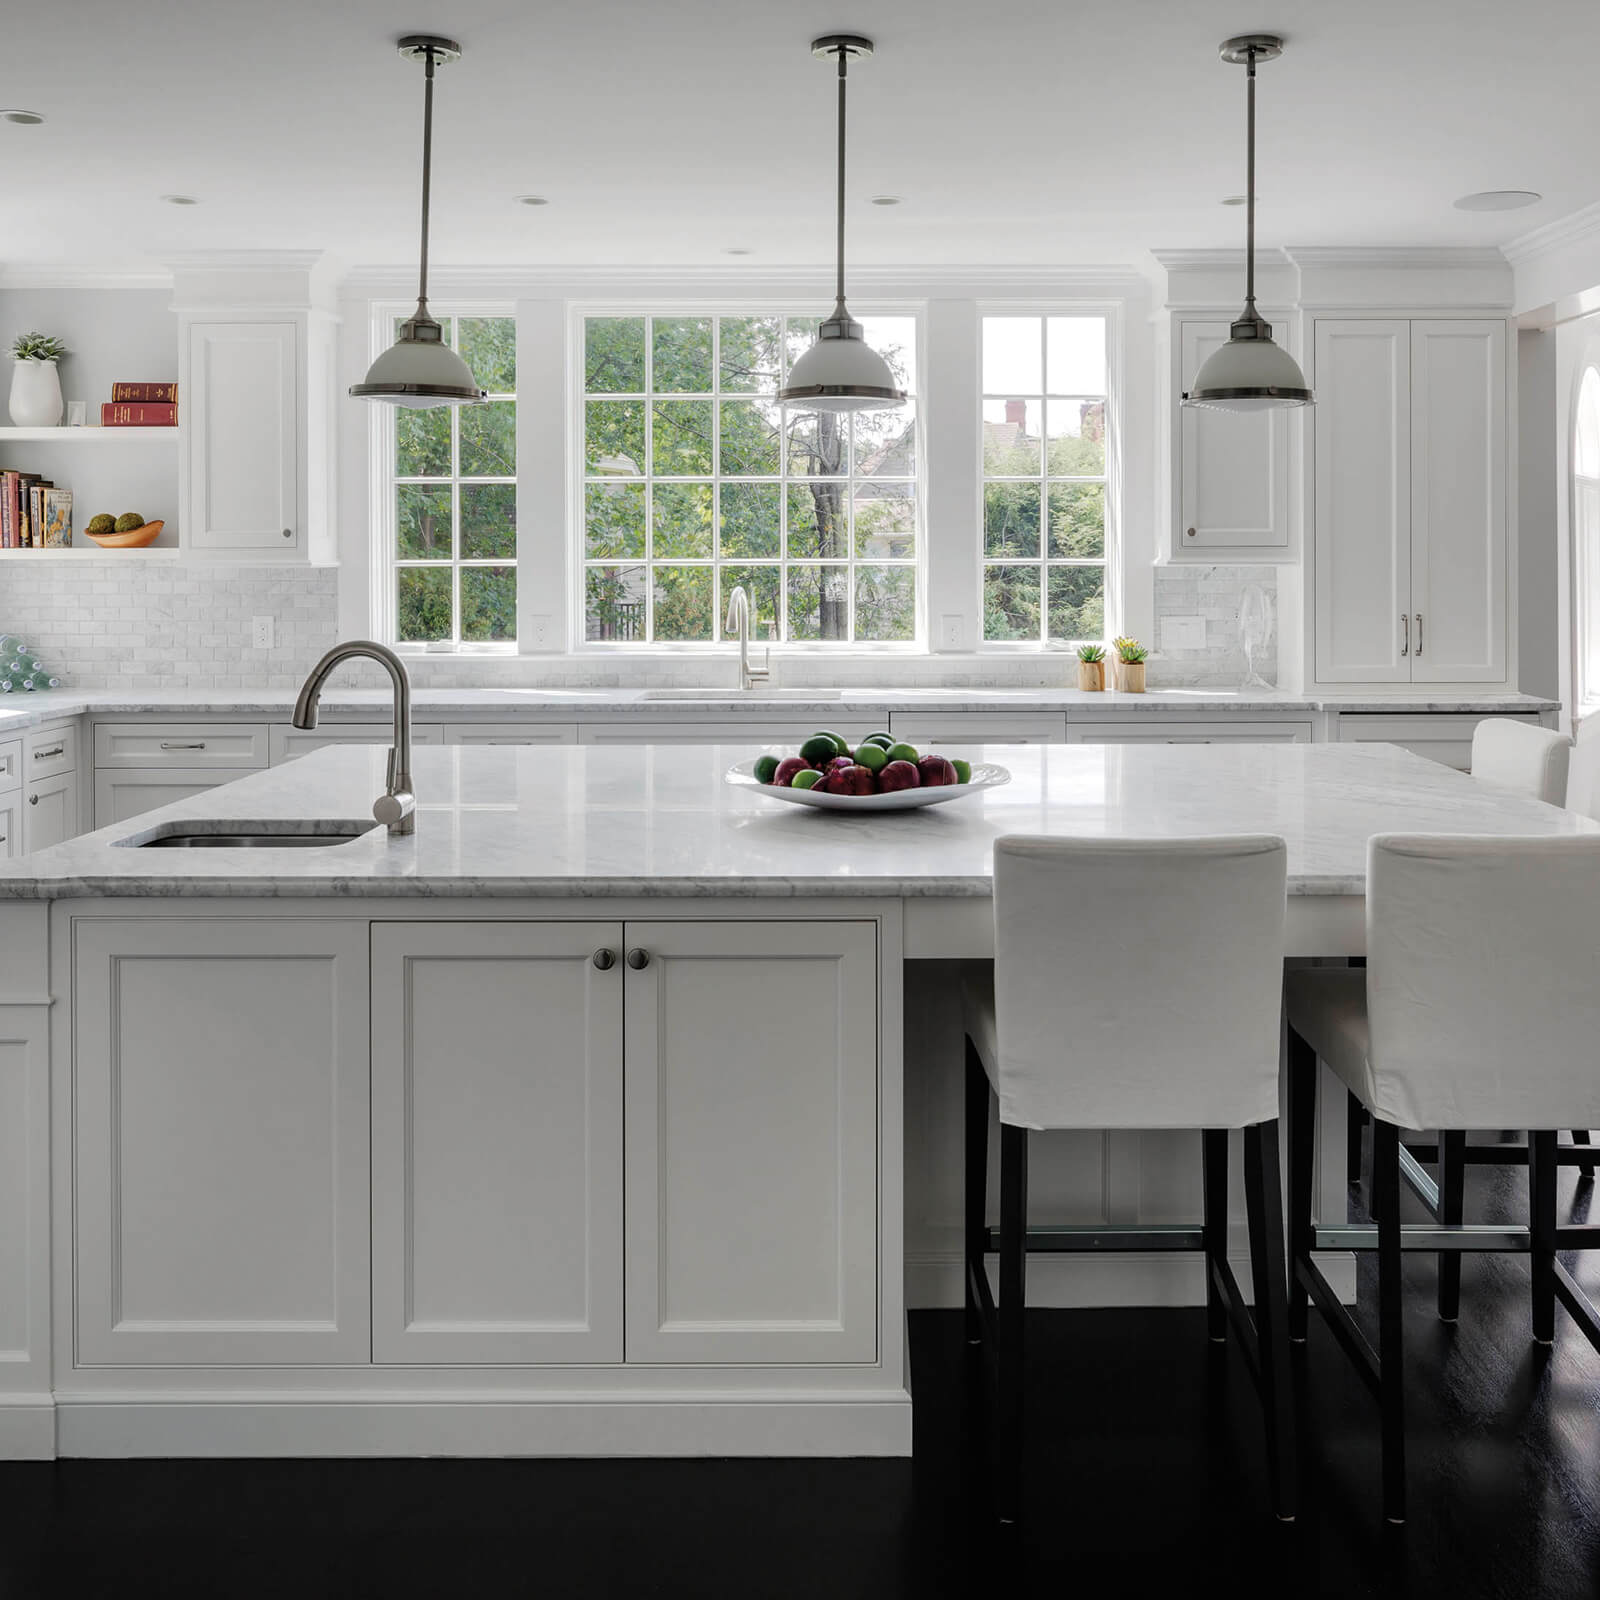 Kitchen with large island and Marvin Elevate Casement Windows